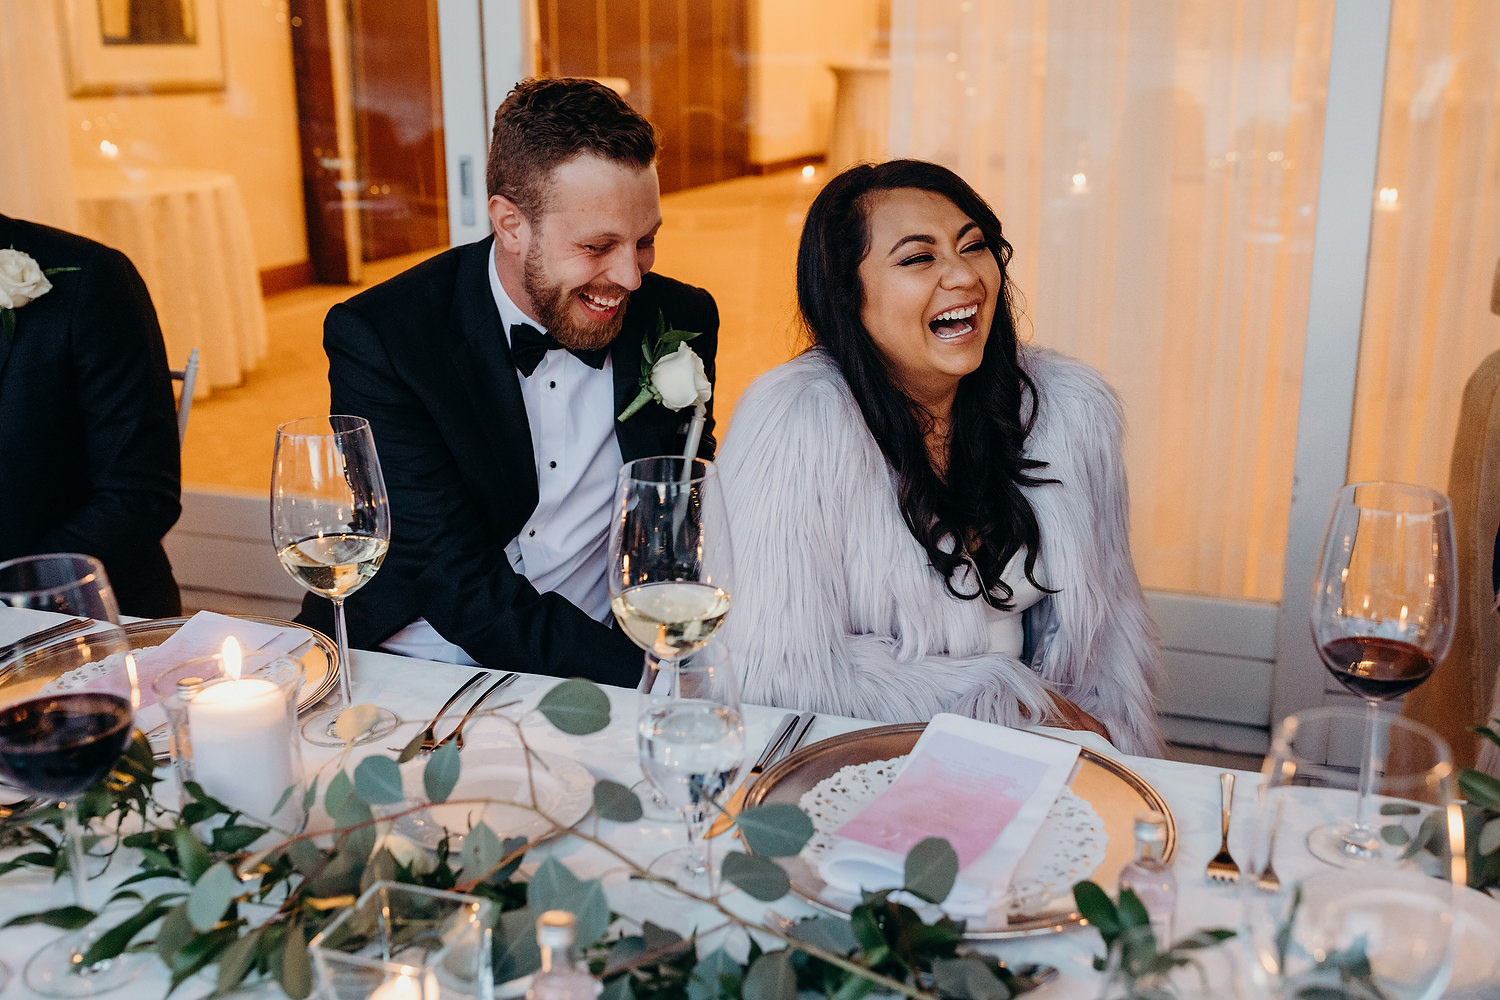 bride and groom laughing at wedding table